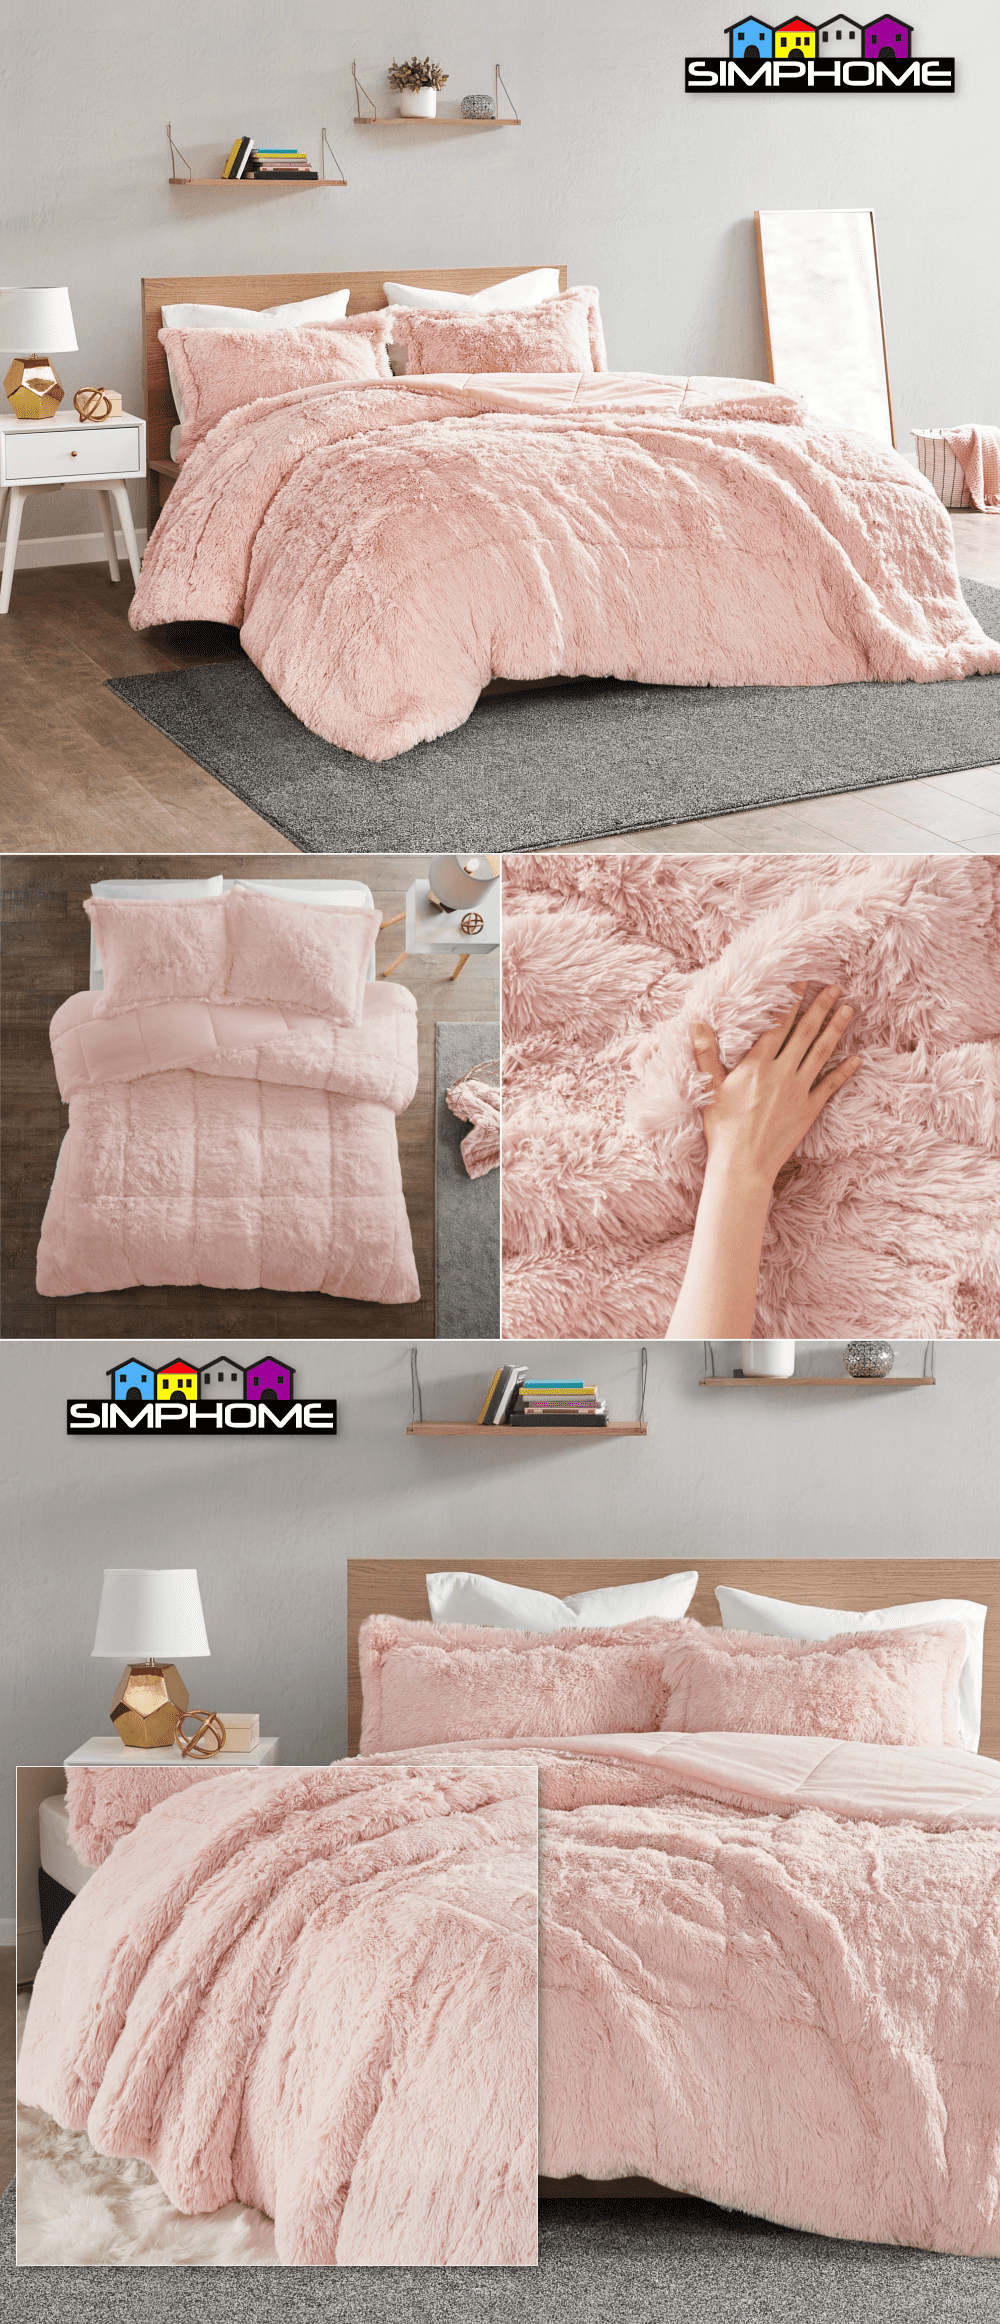 1.Soft Faux Fur Comforter idea via simphome.com